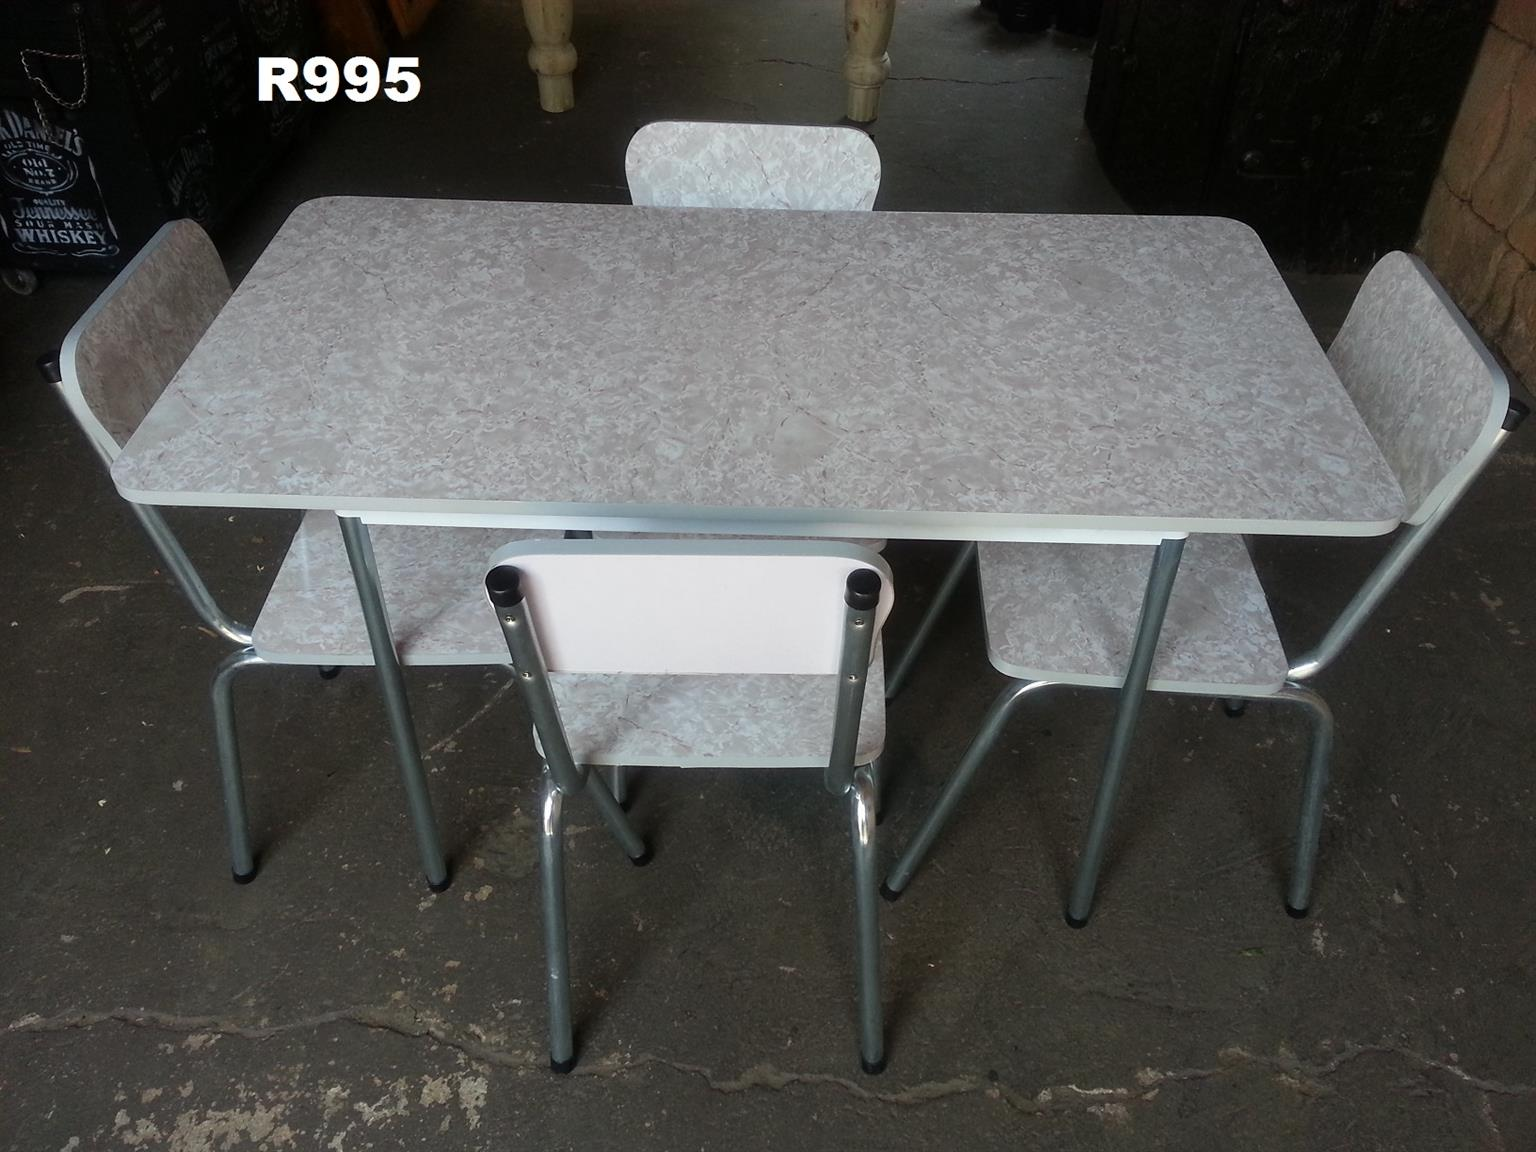 Panelite Kitchen Table With 4 Chairs 1205x625x740 Junk Mail